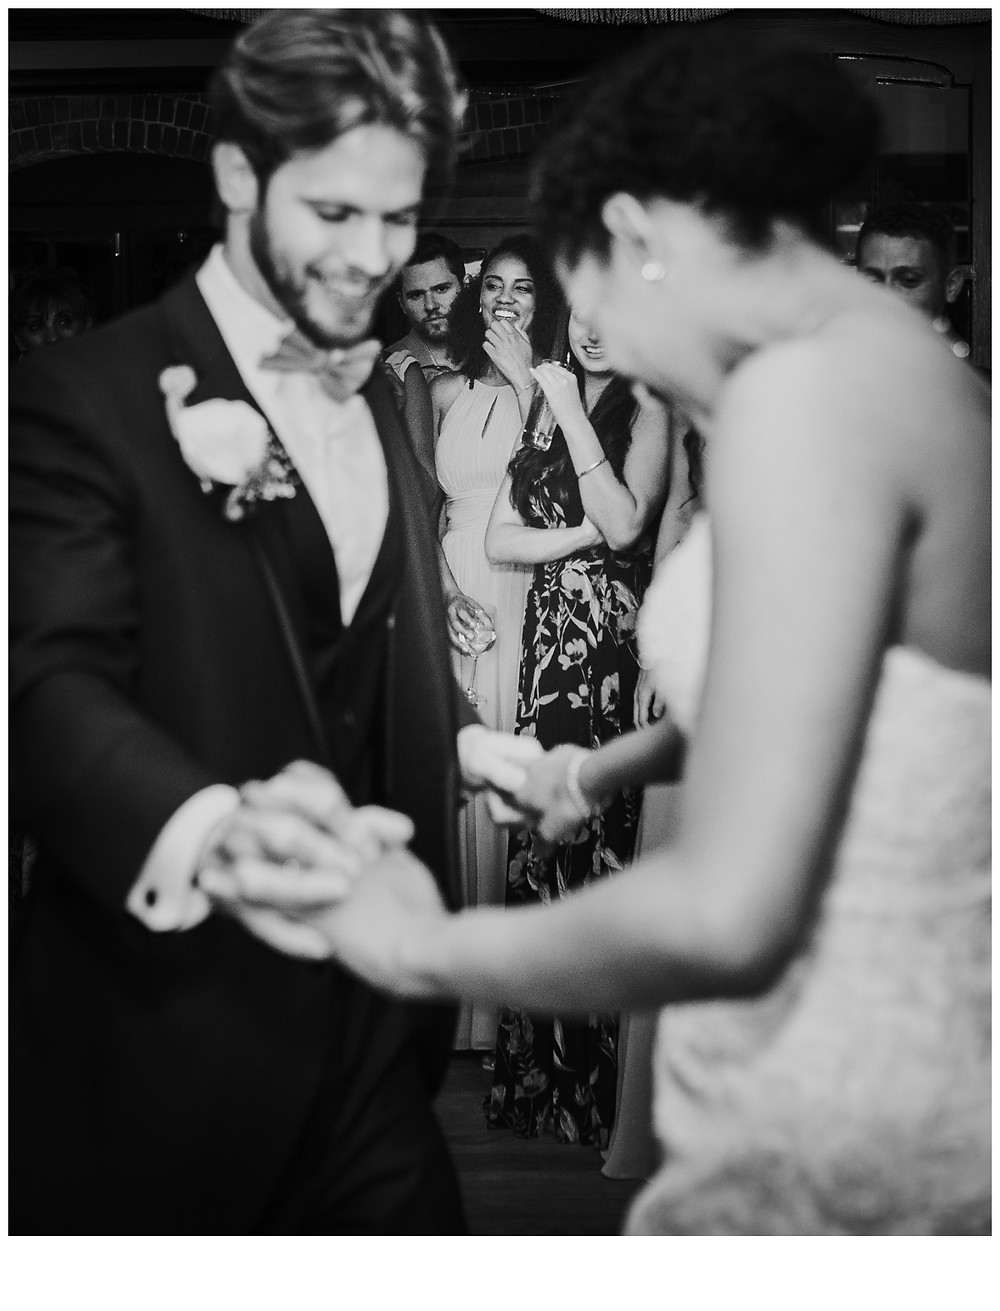 Watching your best friend dancing her first dance as a wife. Candid portrait by Katherine Elizabeth Photography - Baltimore Wedding Photographer